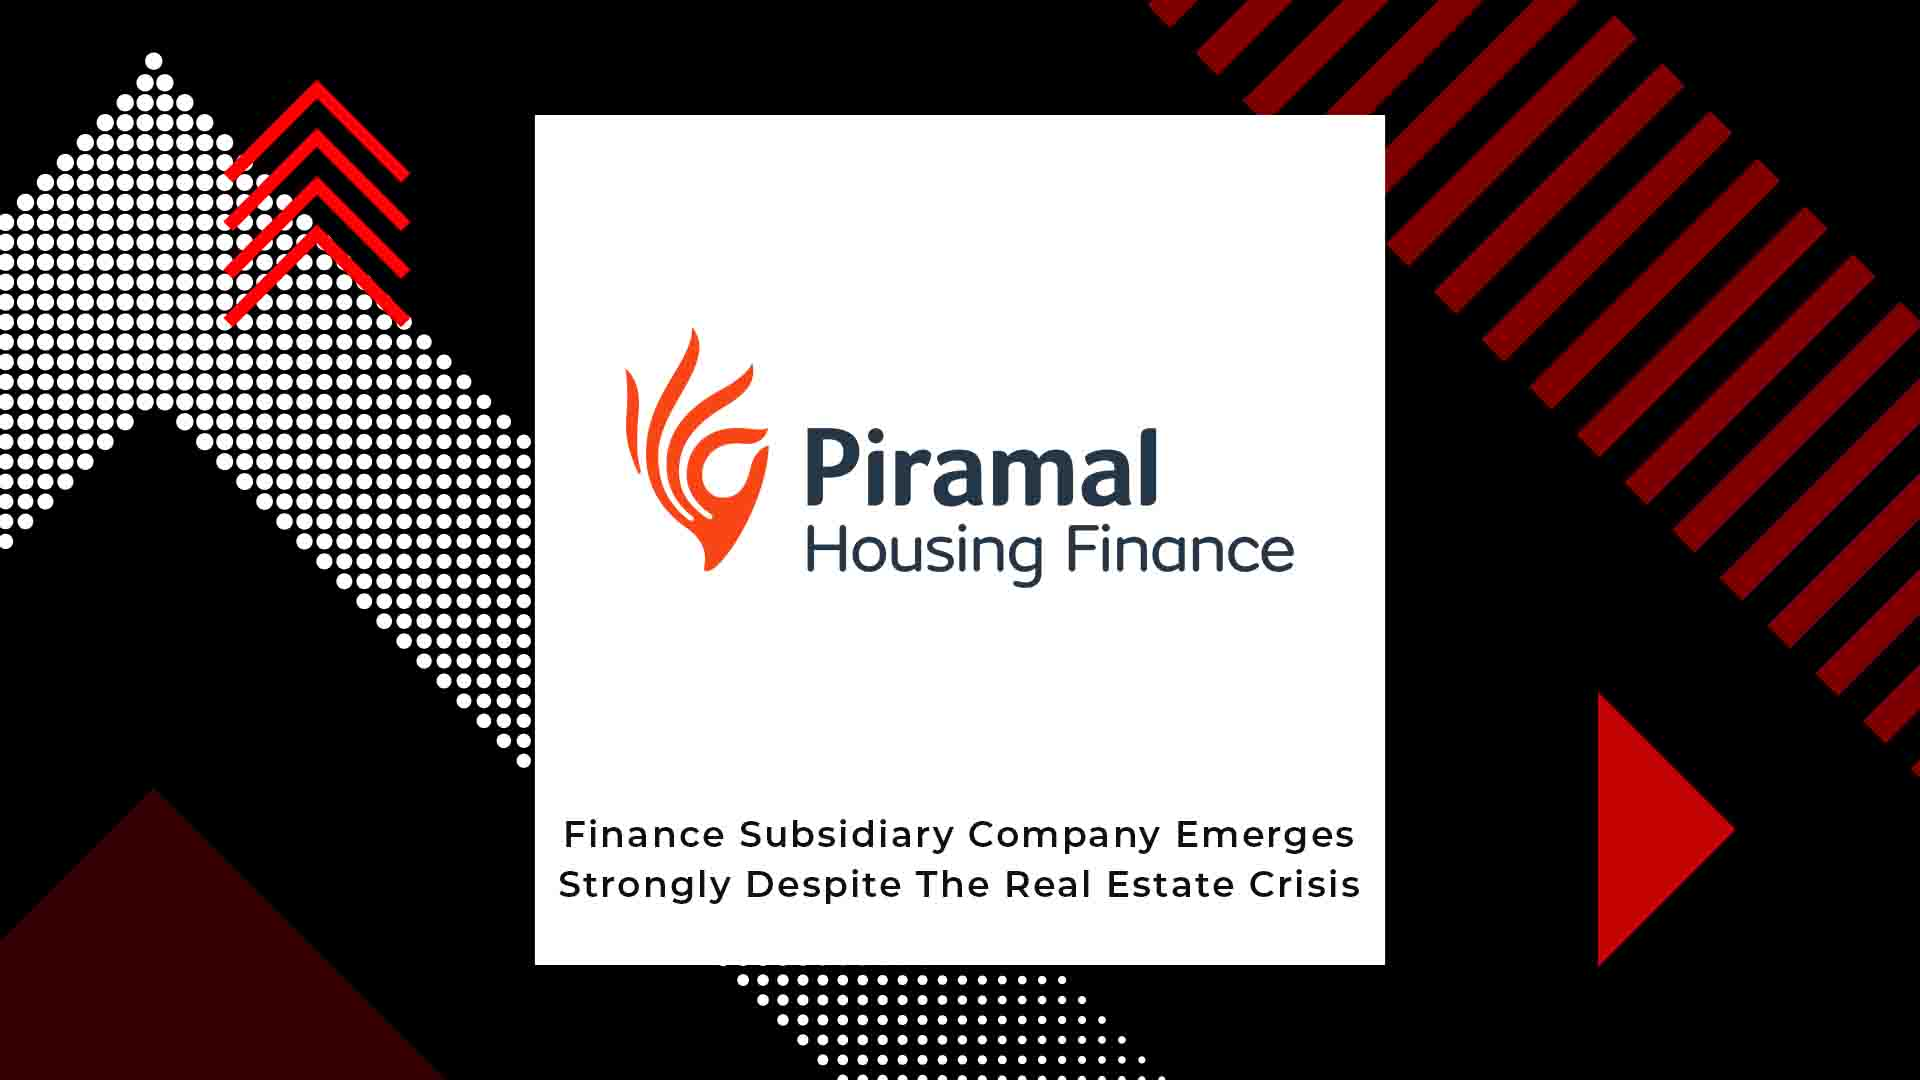 Piramal Capital And Housing Finance Raises Rs 4,000 Crores